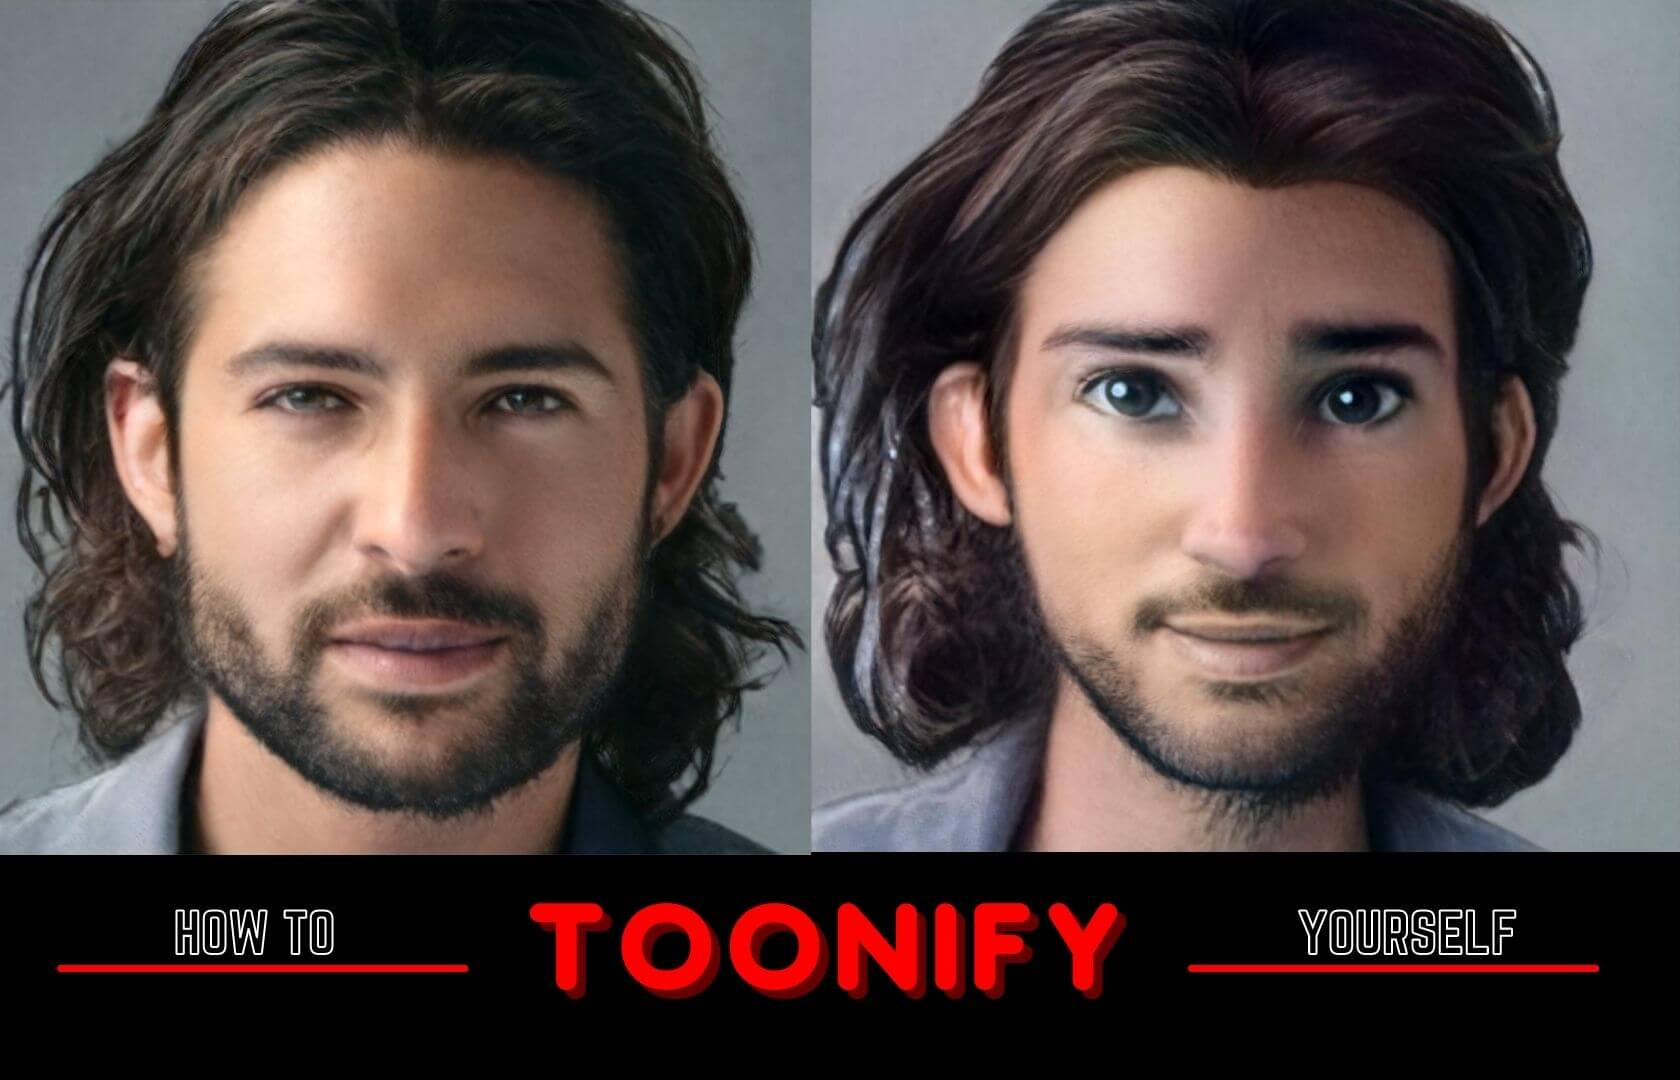 Toonify convert your picture into cartoon avatar